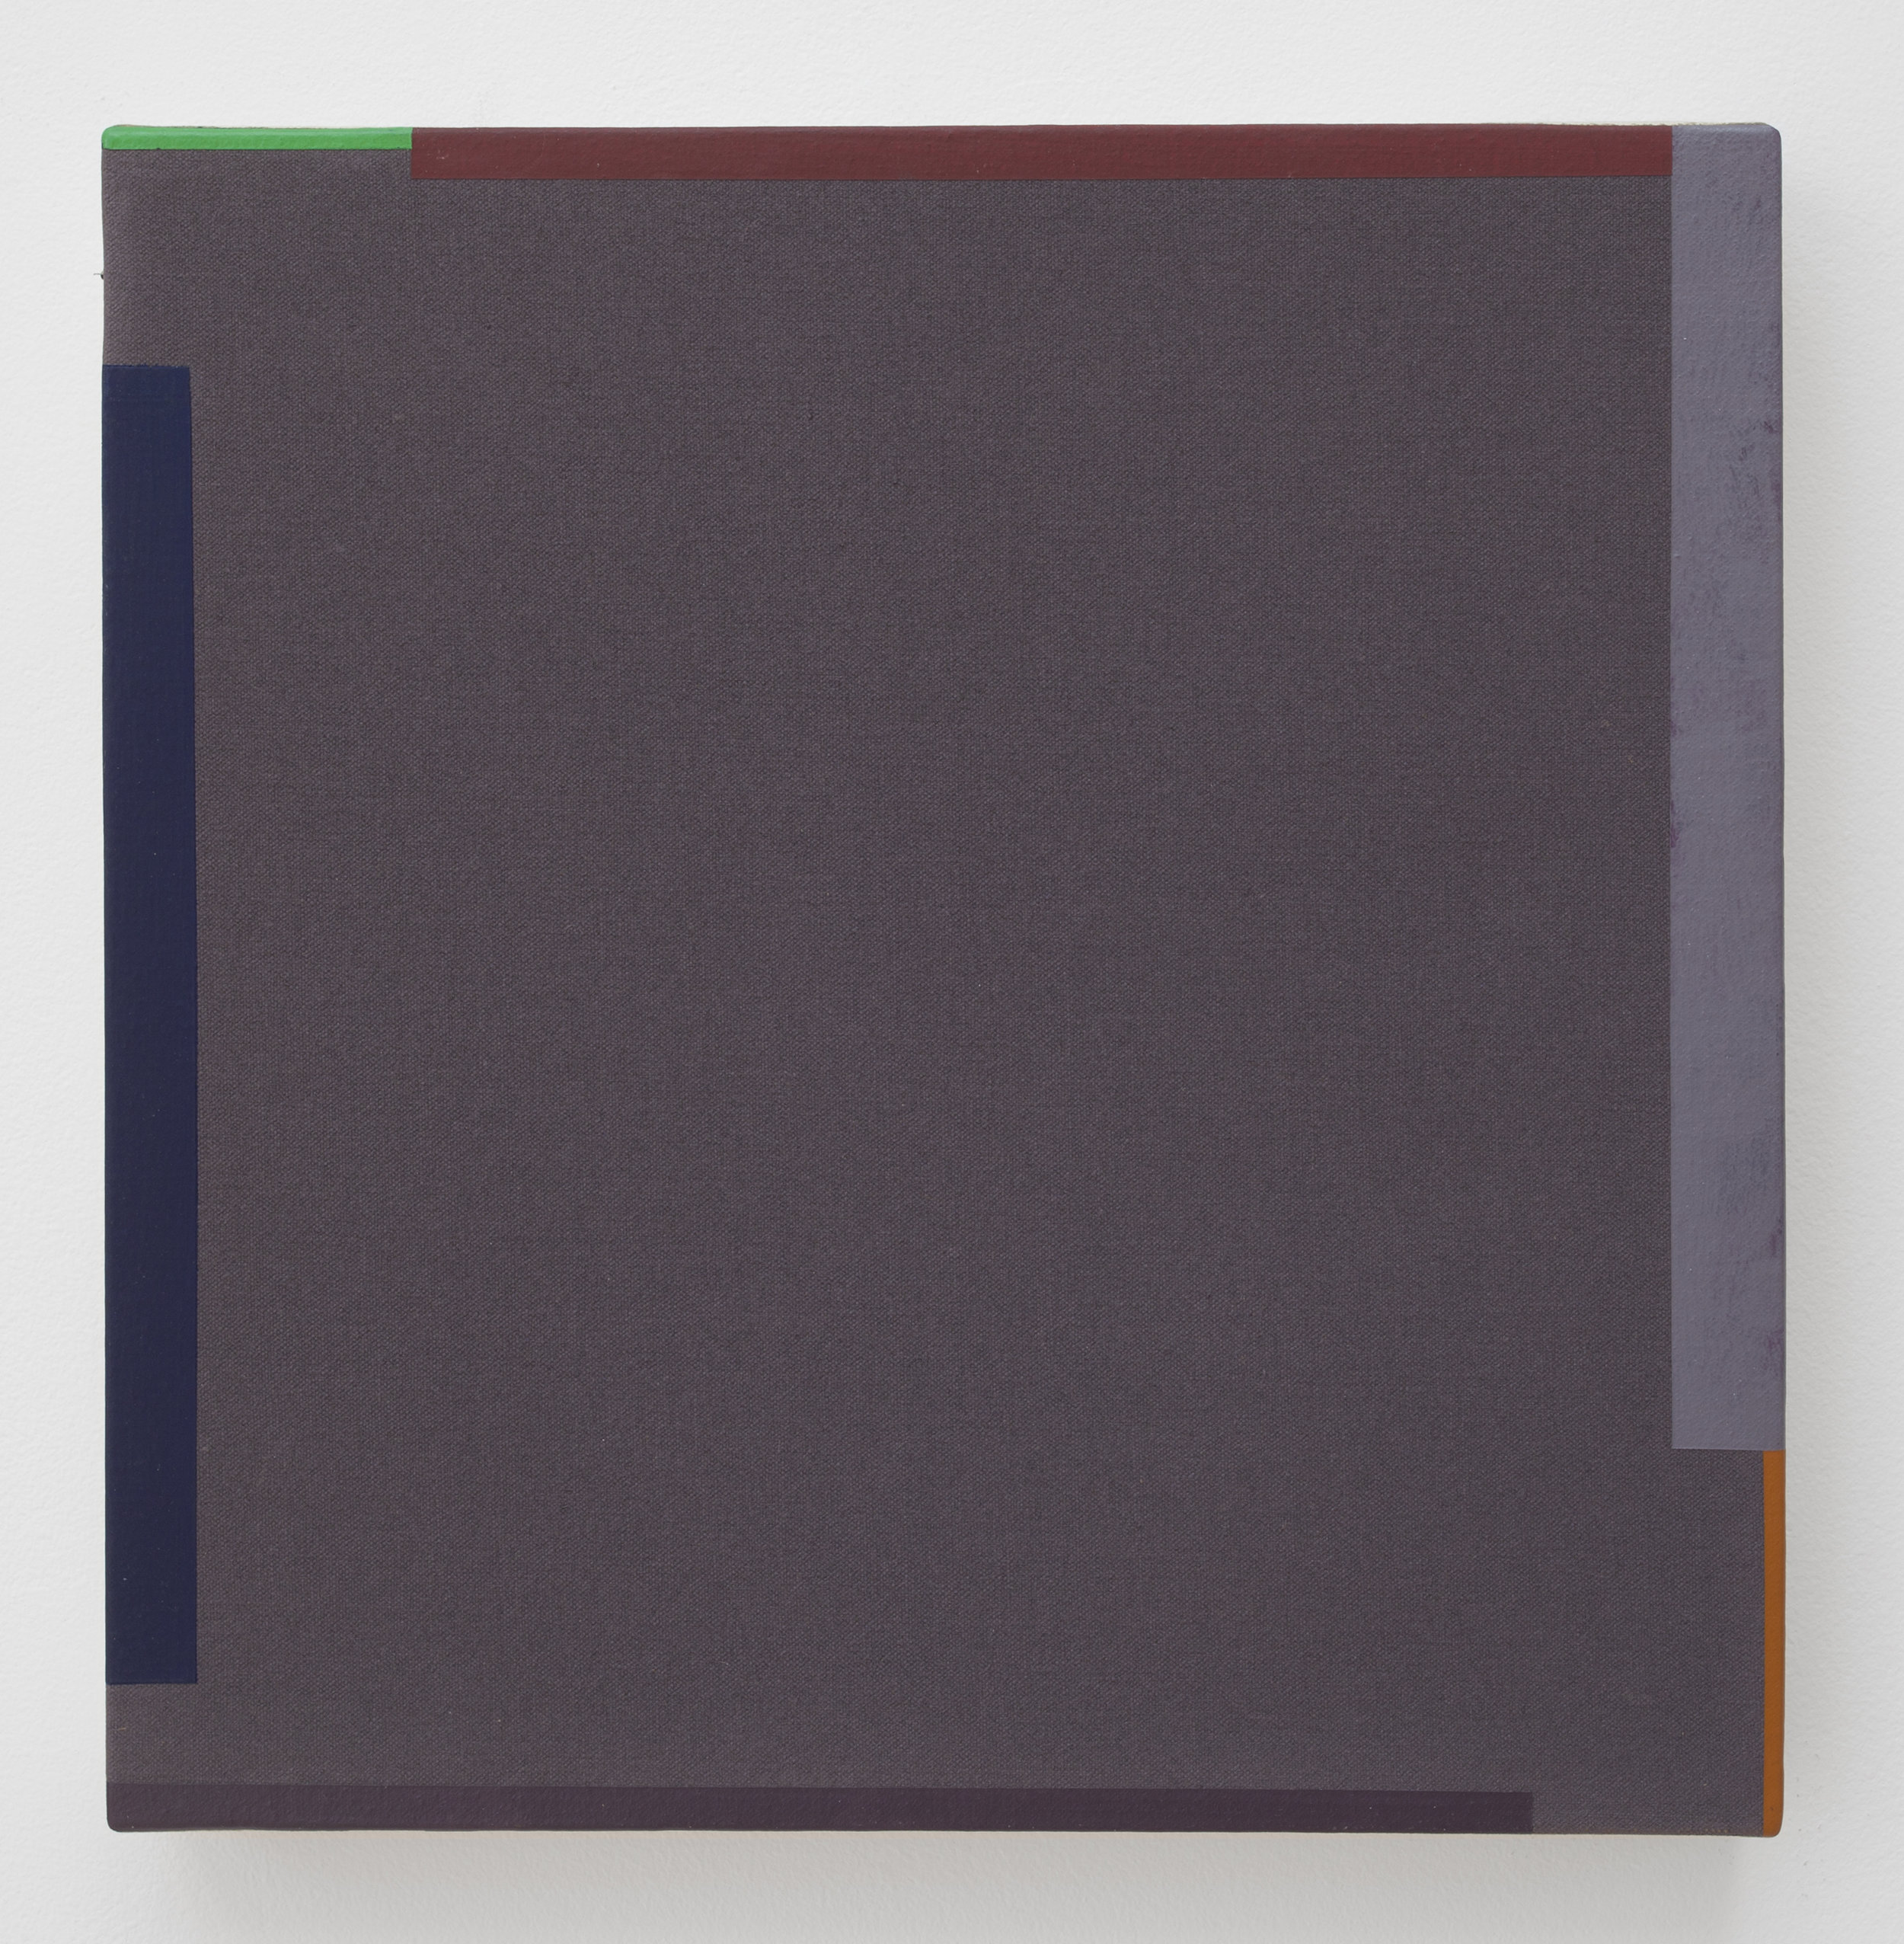 Untitled  (1976), acrylic on canvas, 14.5 x 14.5""